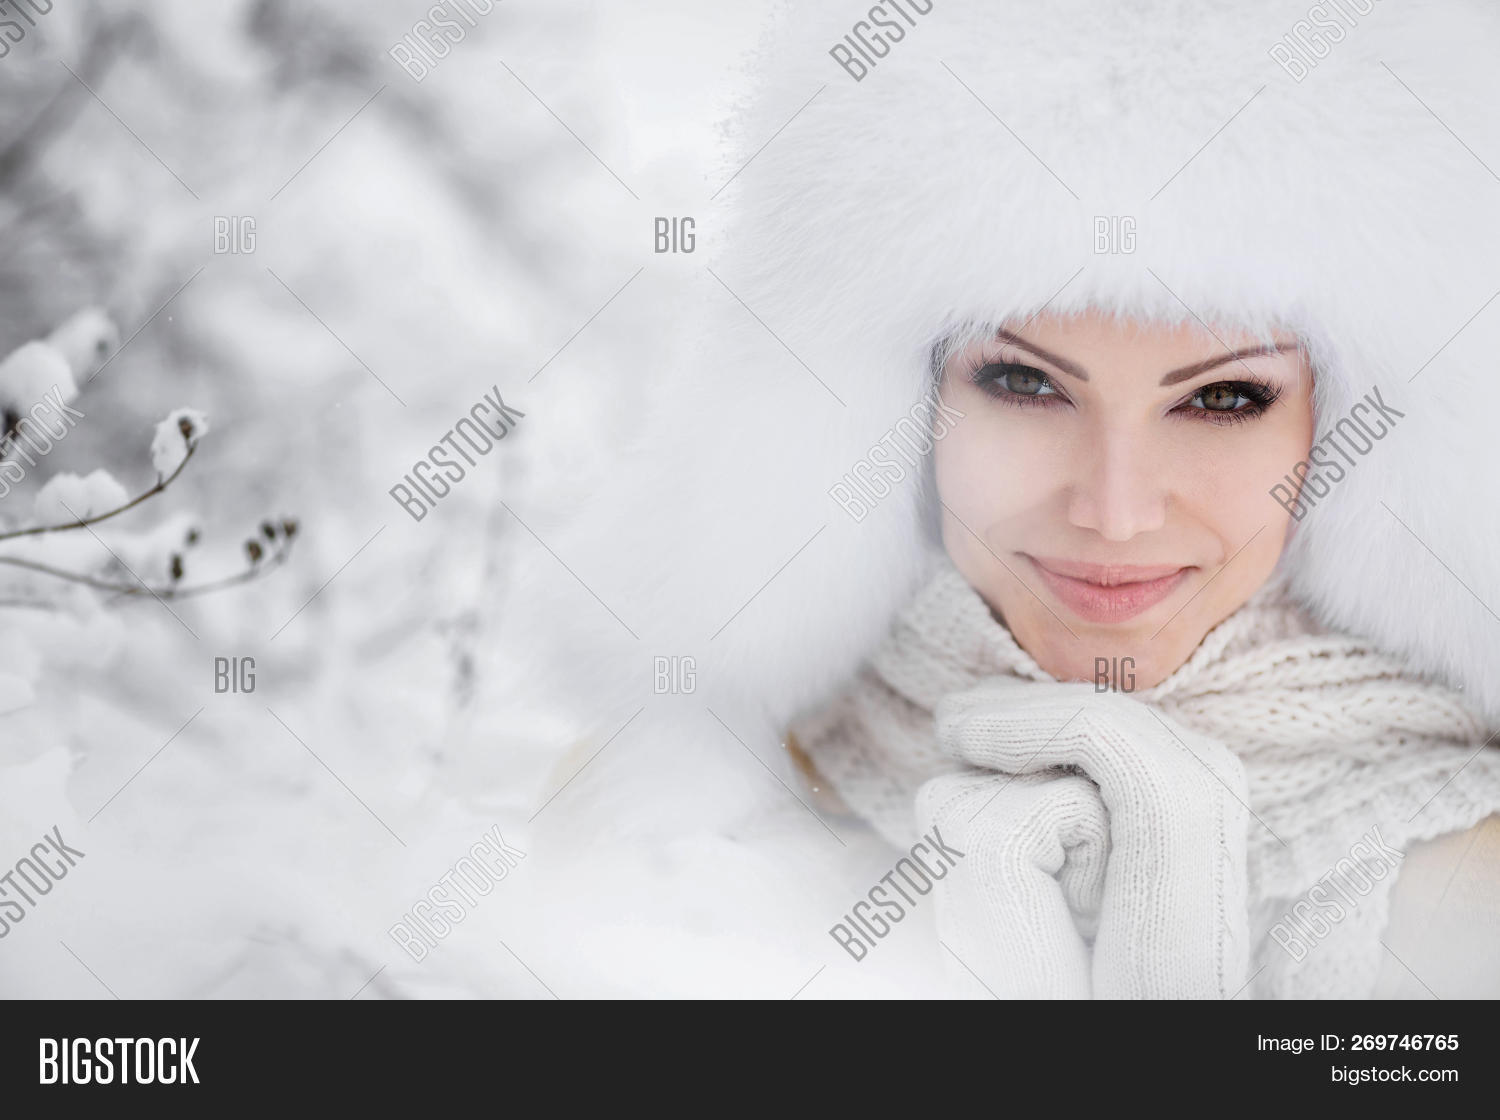 6d31ac345a0e82 Portrait of a cute young woman in a white fluffy fur hat and white scarf in a  white snow-covered park outdoors in winter.Portrait Fashion,beauty,warm ...